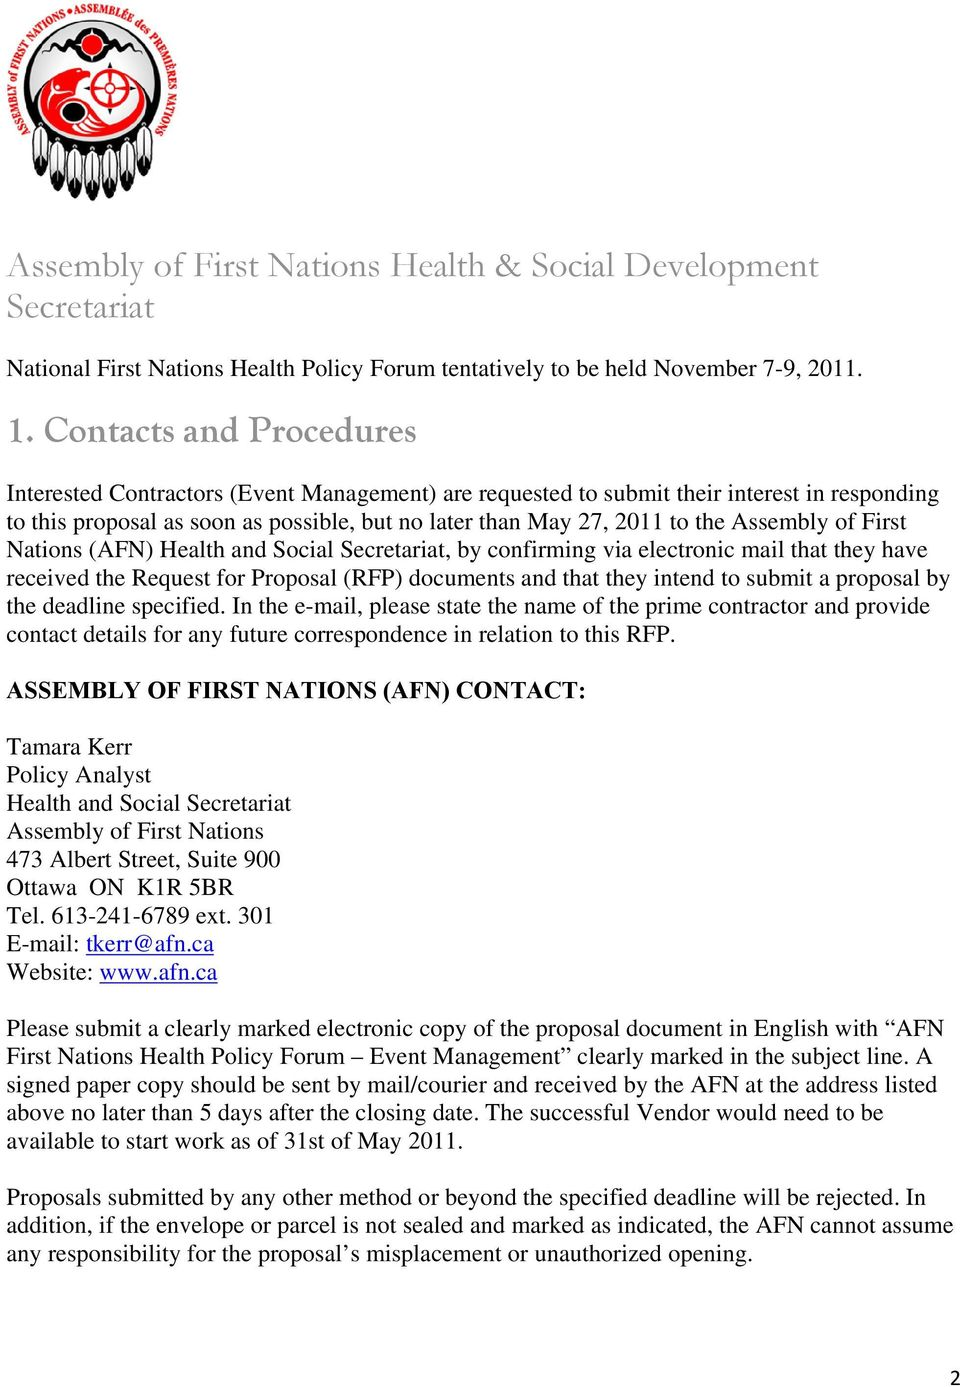 Assembly of First Nations (AFN) Health and Social Secretariat, by confirming via electronic mail that they have received the Request for Proposal (RFP) documents and that they intend to submit a